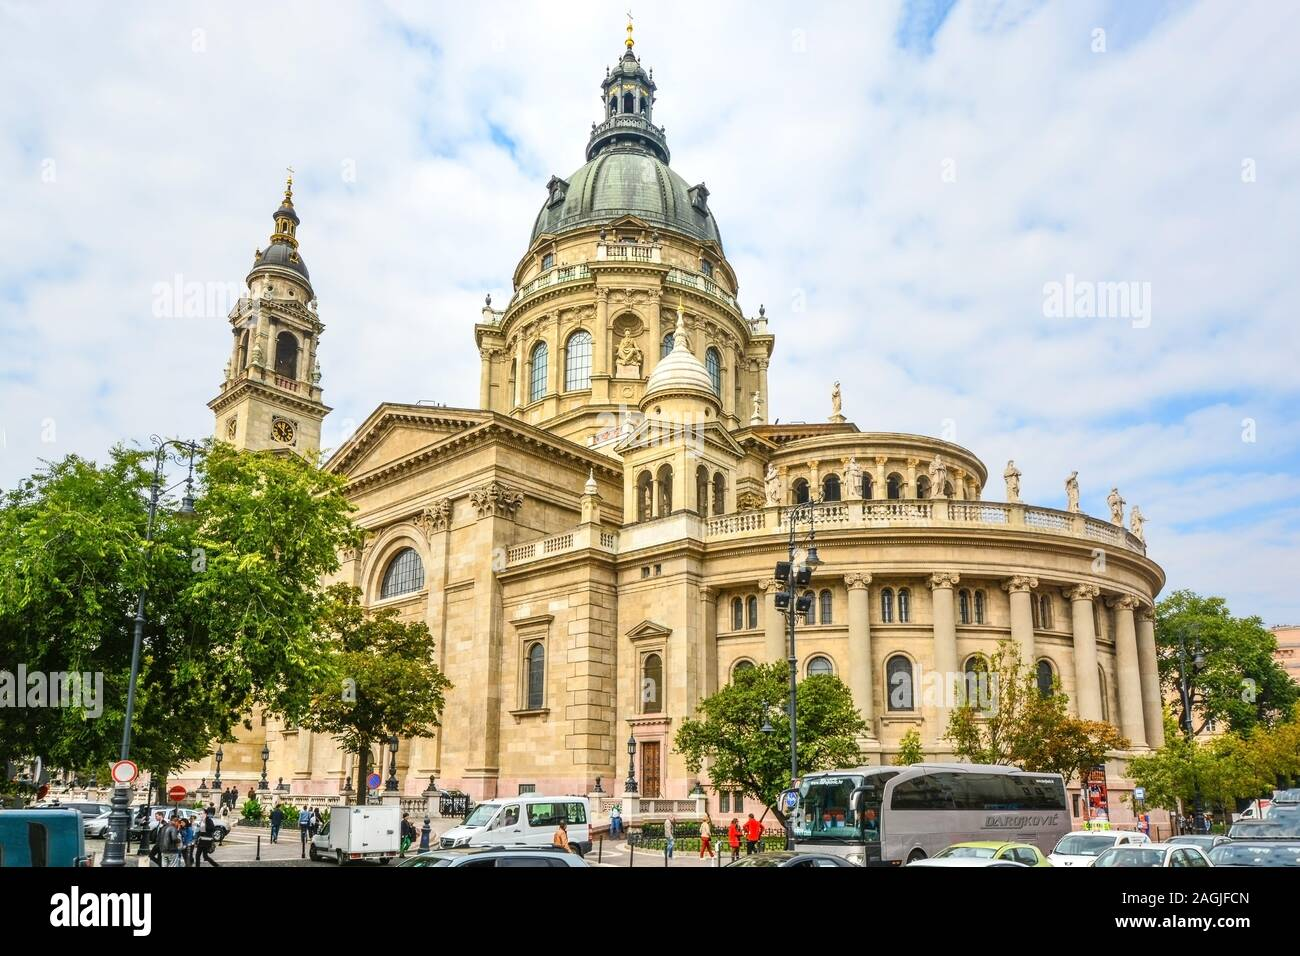 September 28 2018: Tourists and local Hungarians pass by St. Stephen's Basilica, a Roman Catholic basilica in Budapest, Hungary Stock Photo